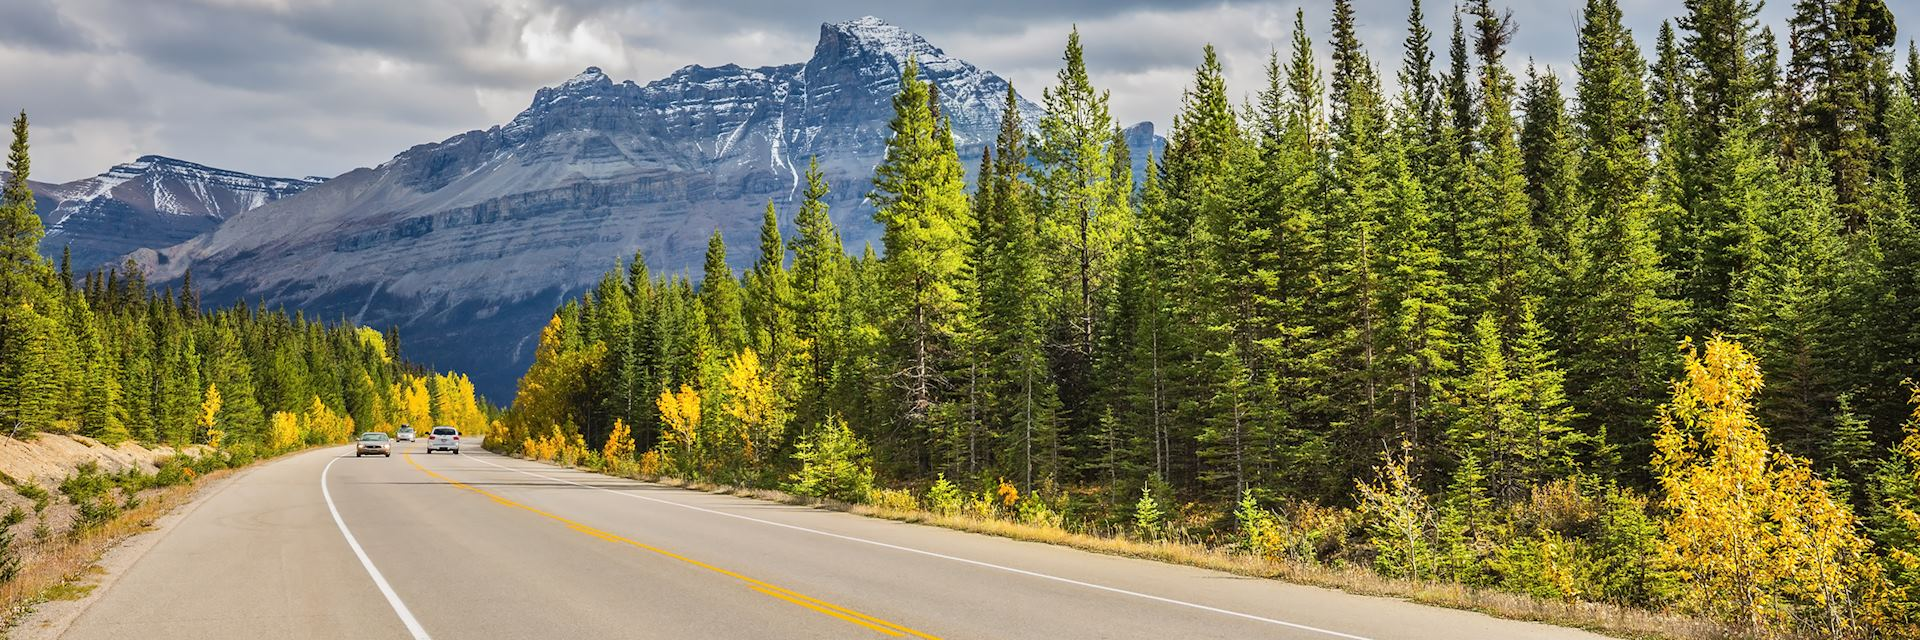 Road from Jasper to Banff, Icefields Parkway